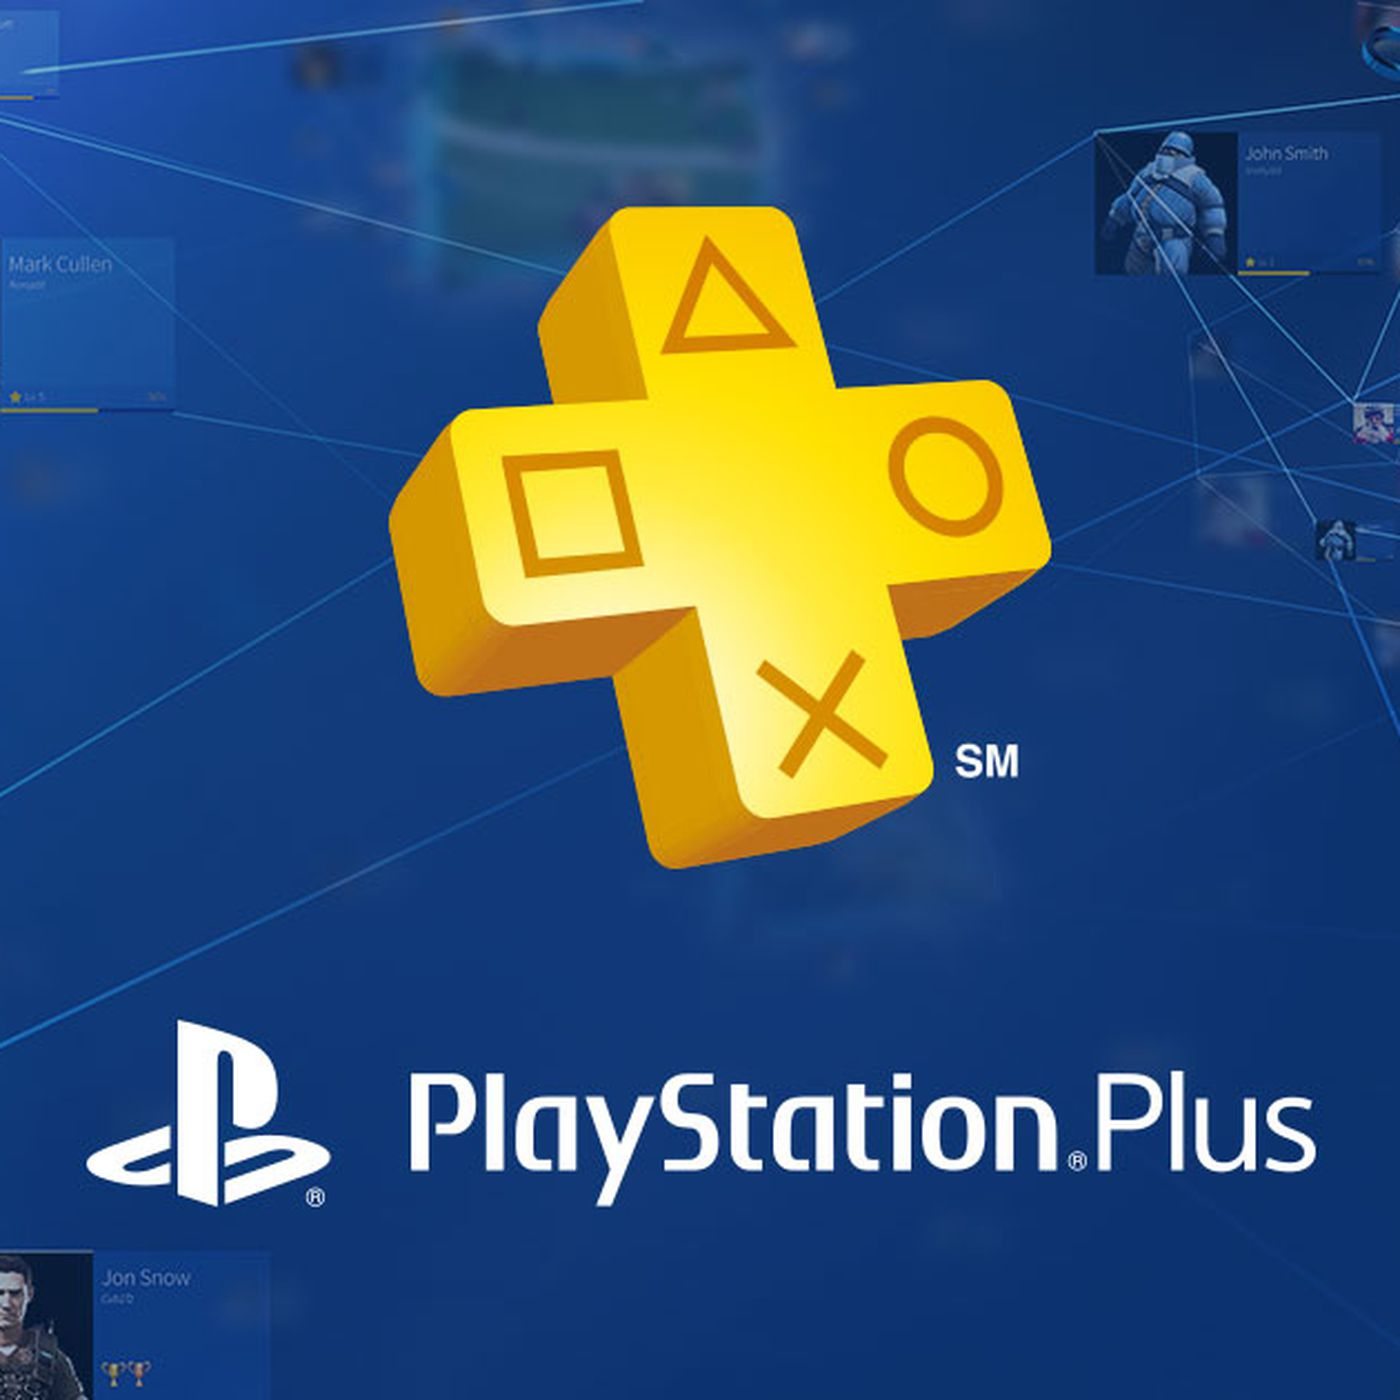 PlayStation Plus is getting rid of free PS3 and Vita games in March